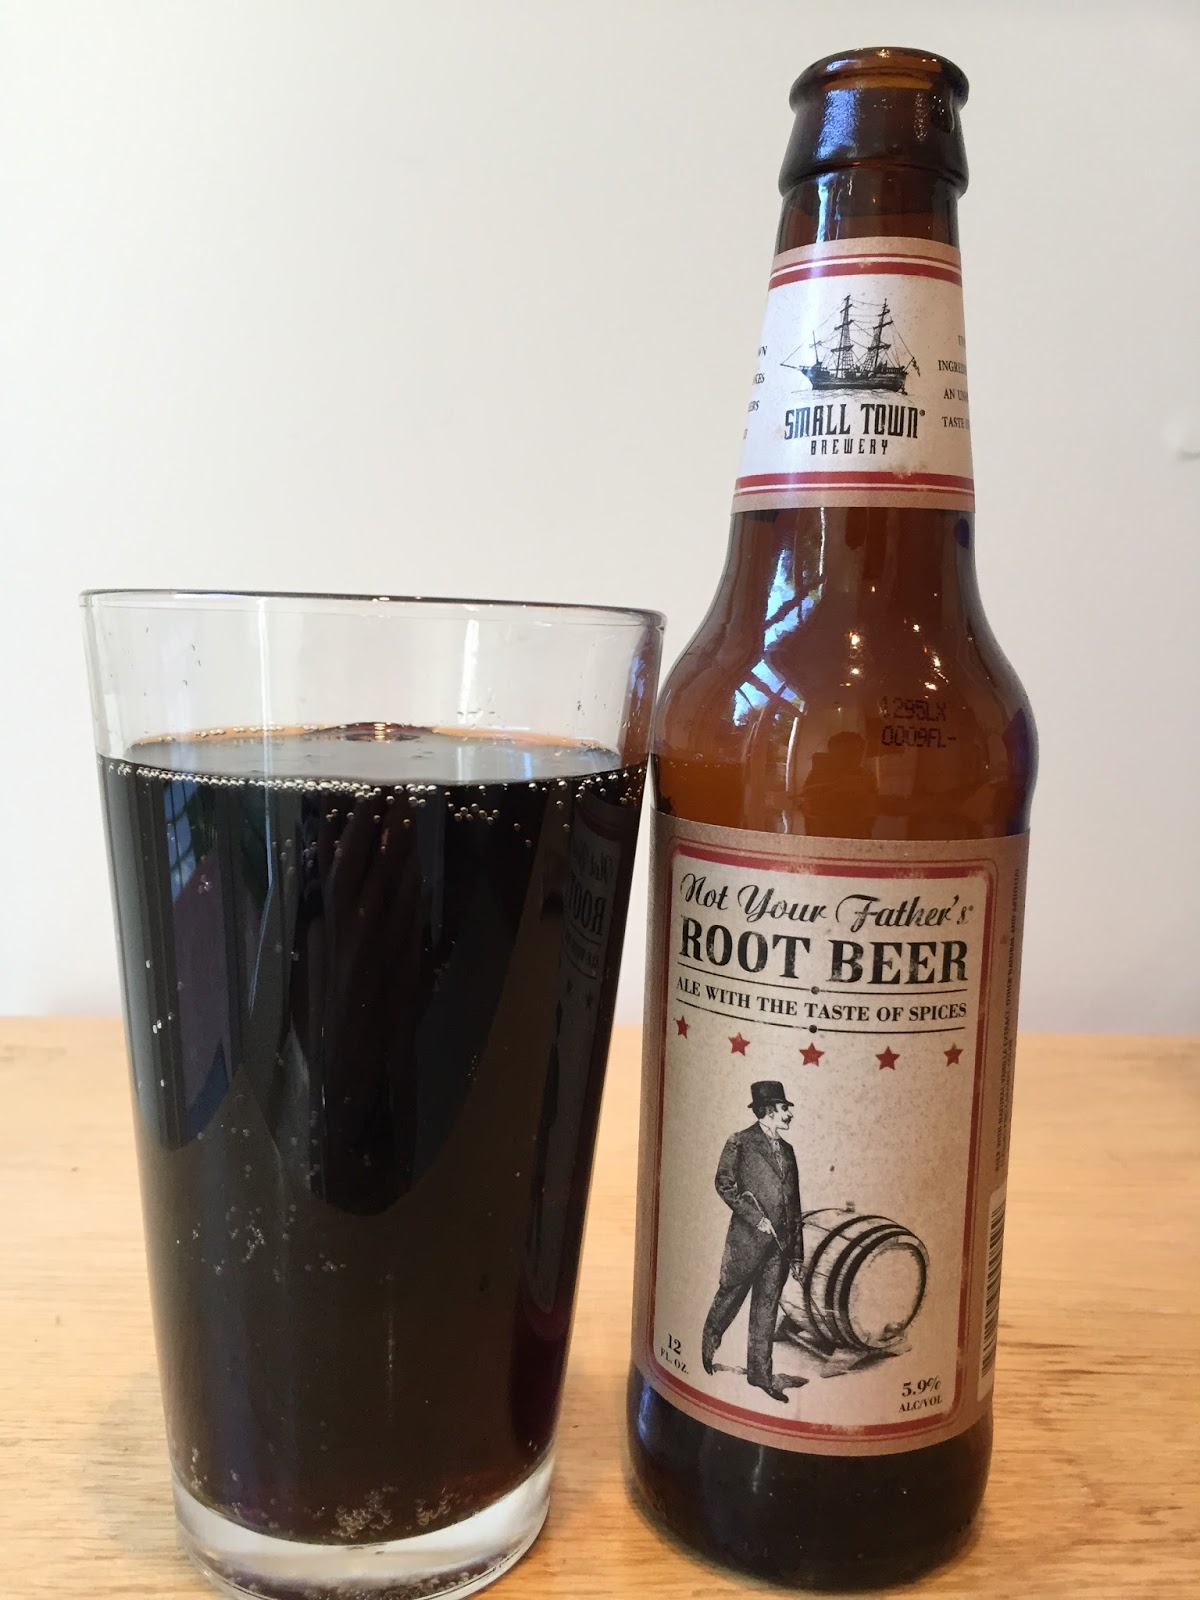 Where to buy not your father s root beer -  Not Your Father S Root Beer I Sometimes Try To Go For Trendy Or Trending Beers And Recently One Beer In Particular Has Been Gaining Popularity